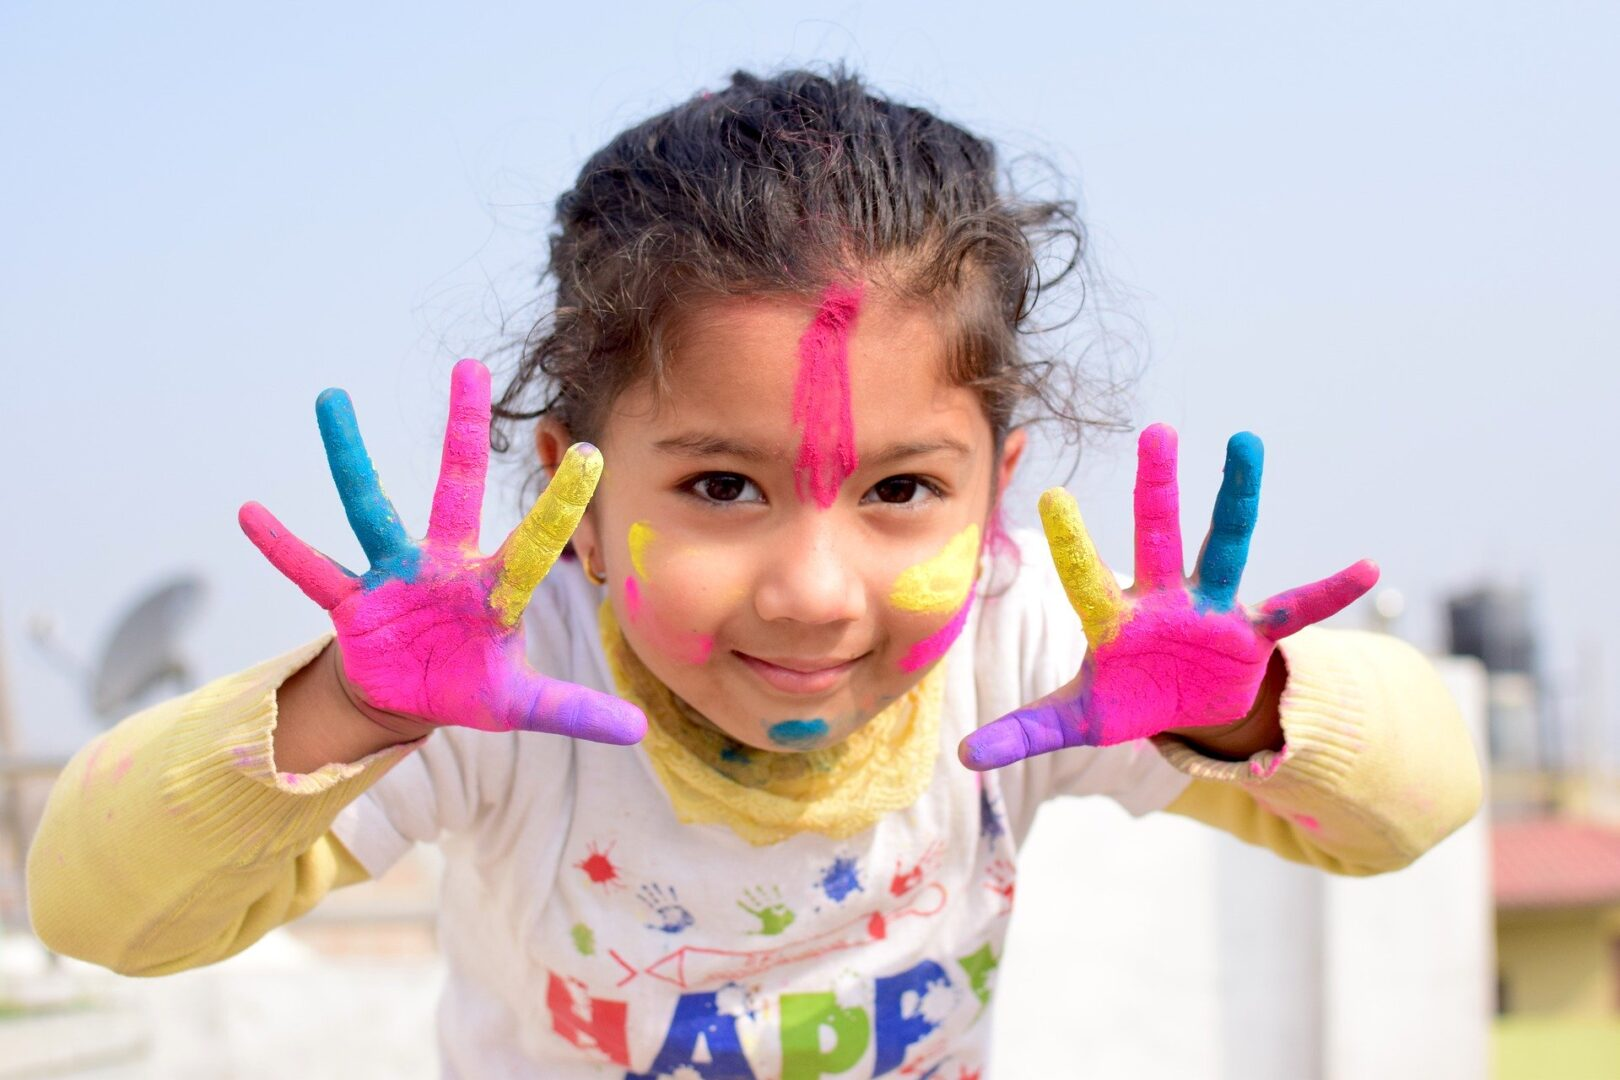 Child with paint on outspread fingers